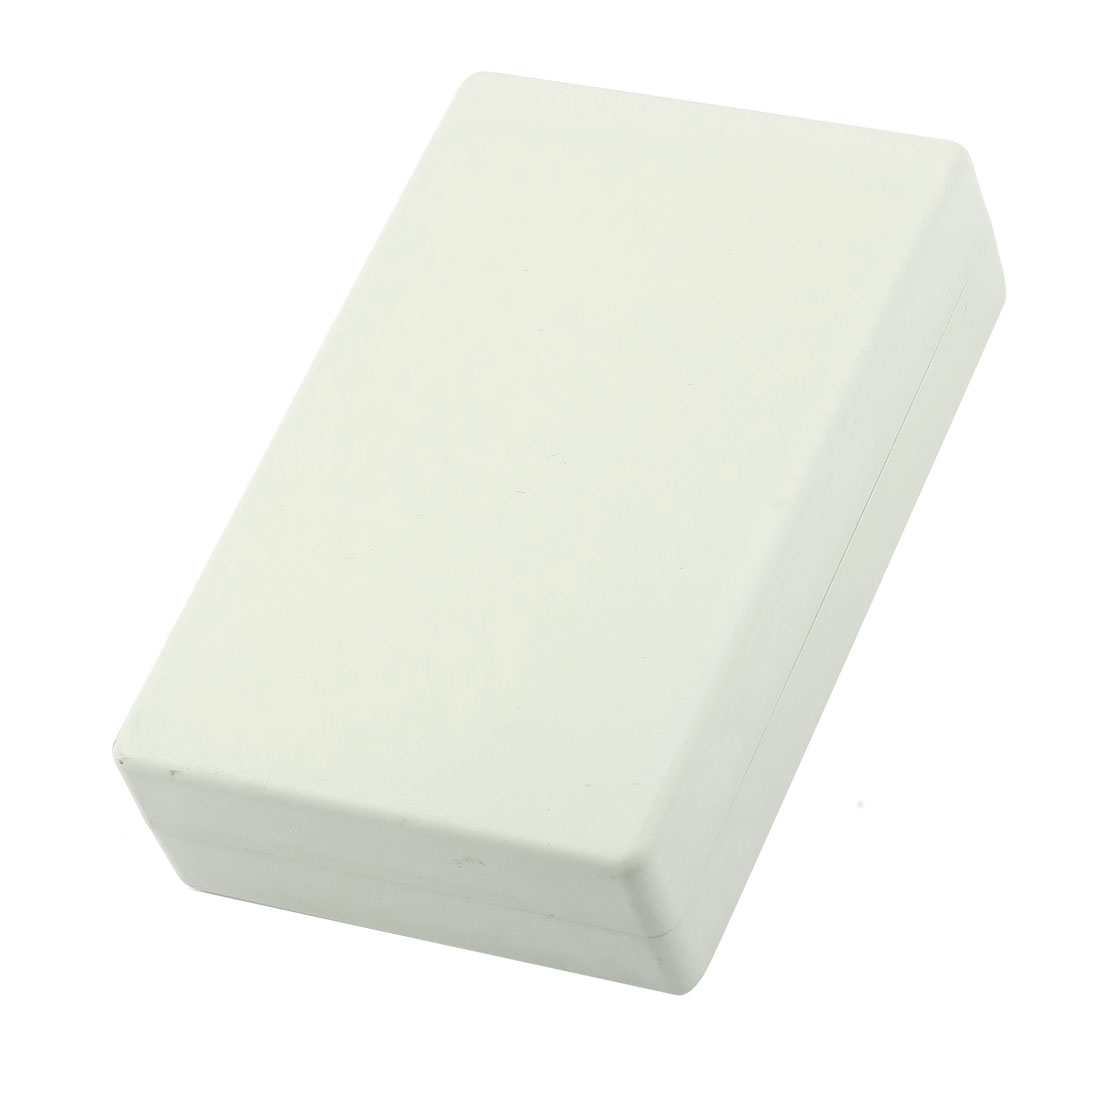 Plastic Sealed Electric Junction Box Power Protection Case 125mm x 80mm x 33mm - image 2 of 2